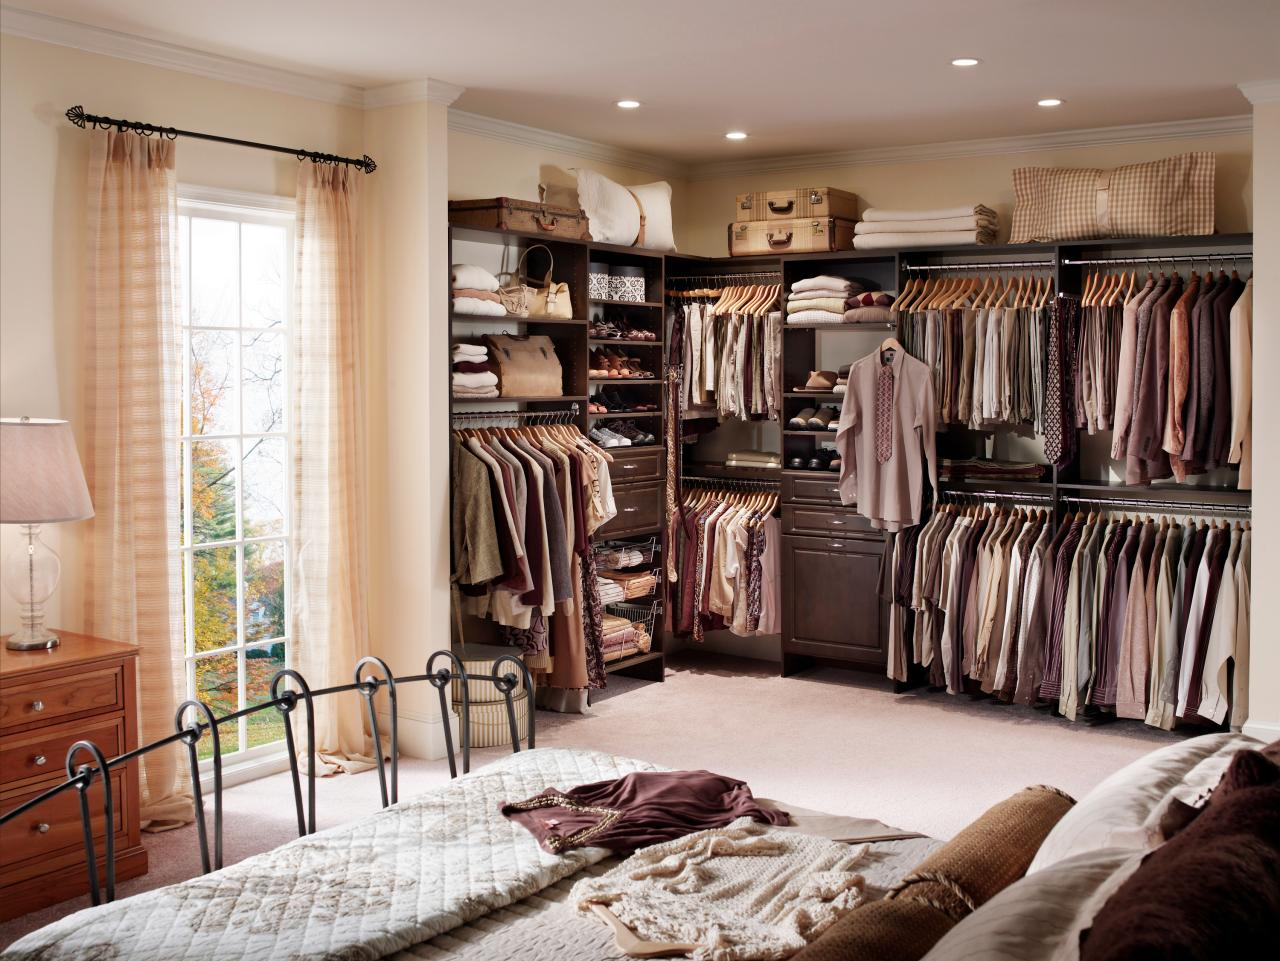 Top 3 Styles of Closets | HGTV